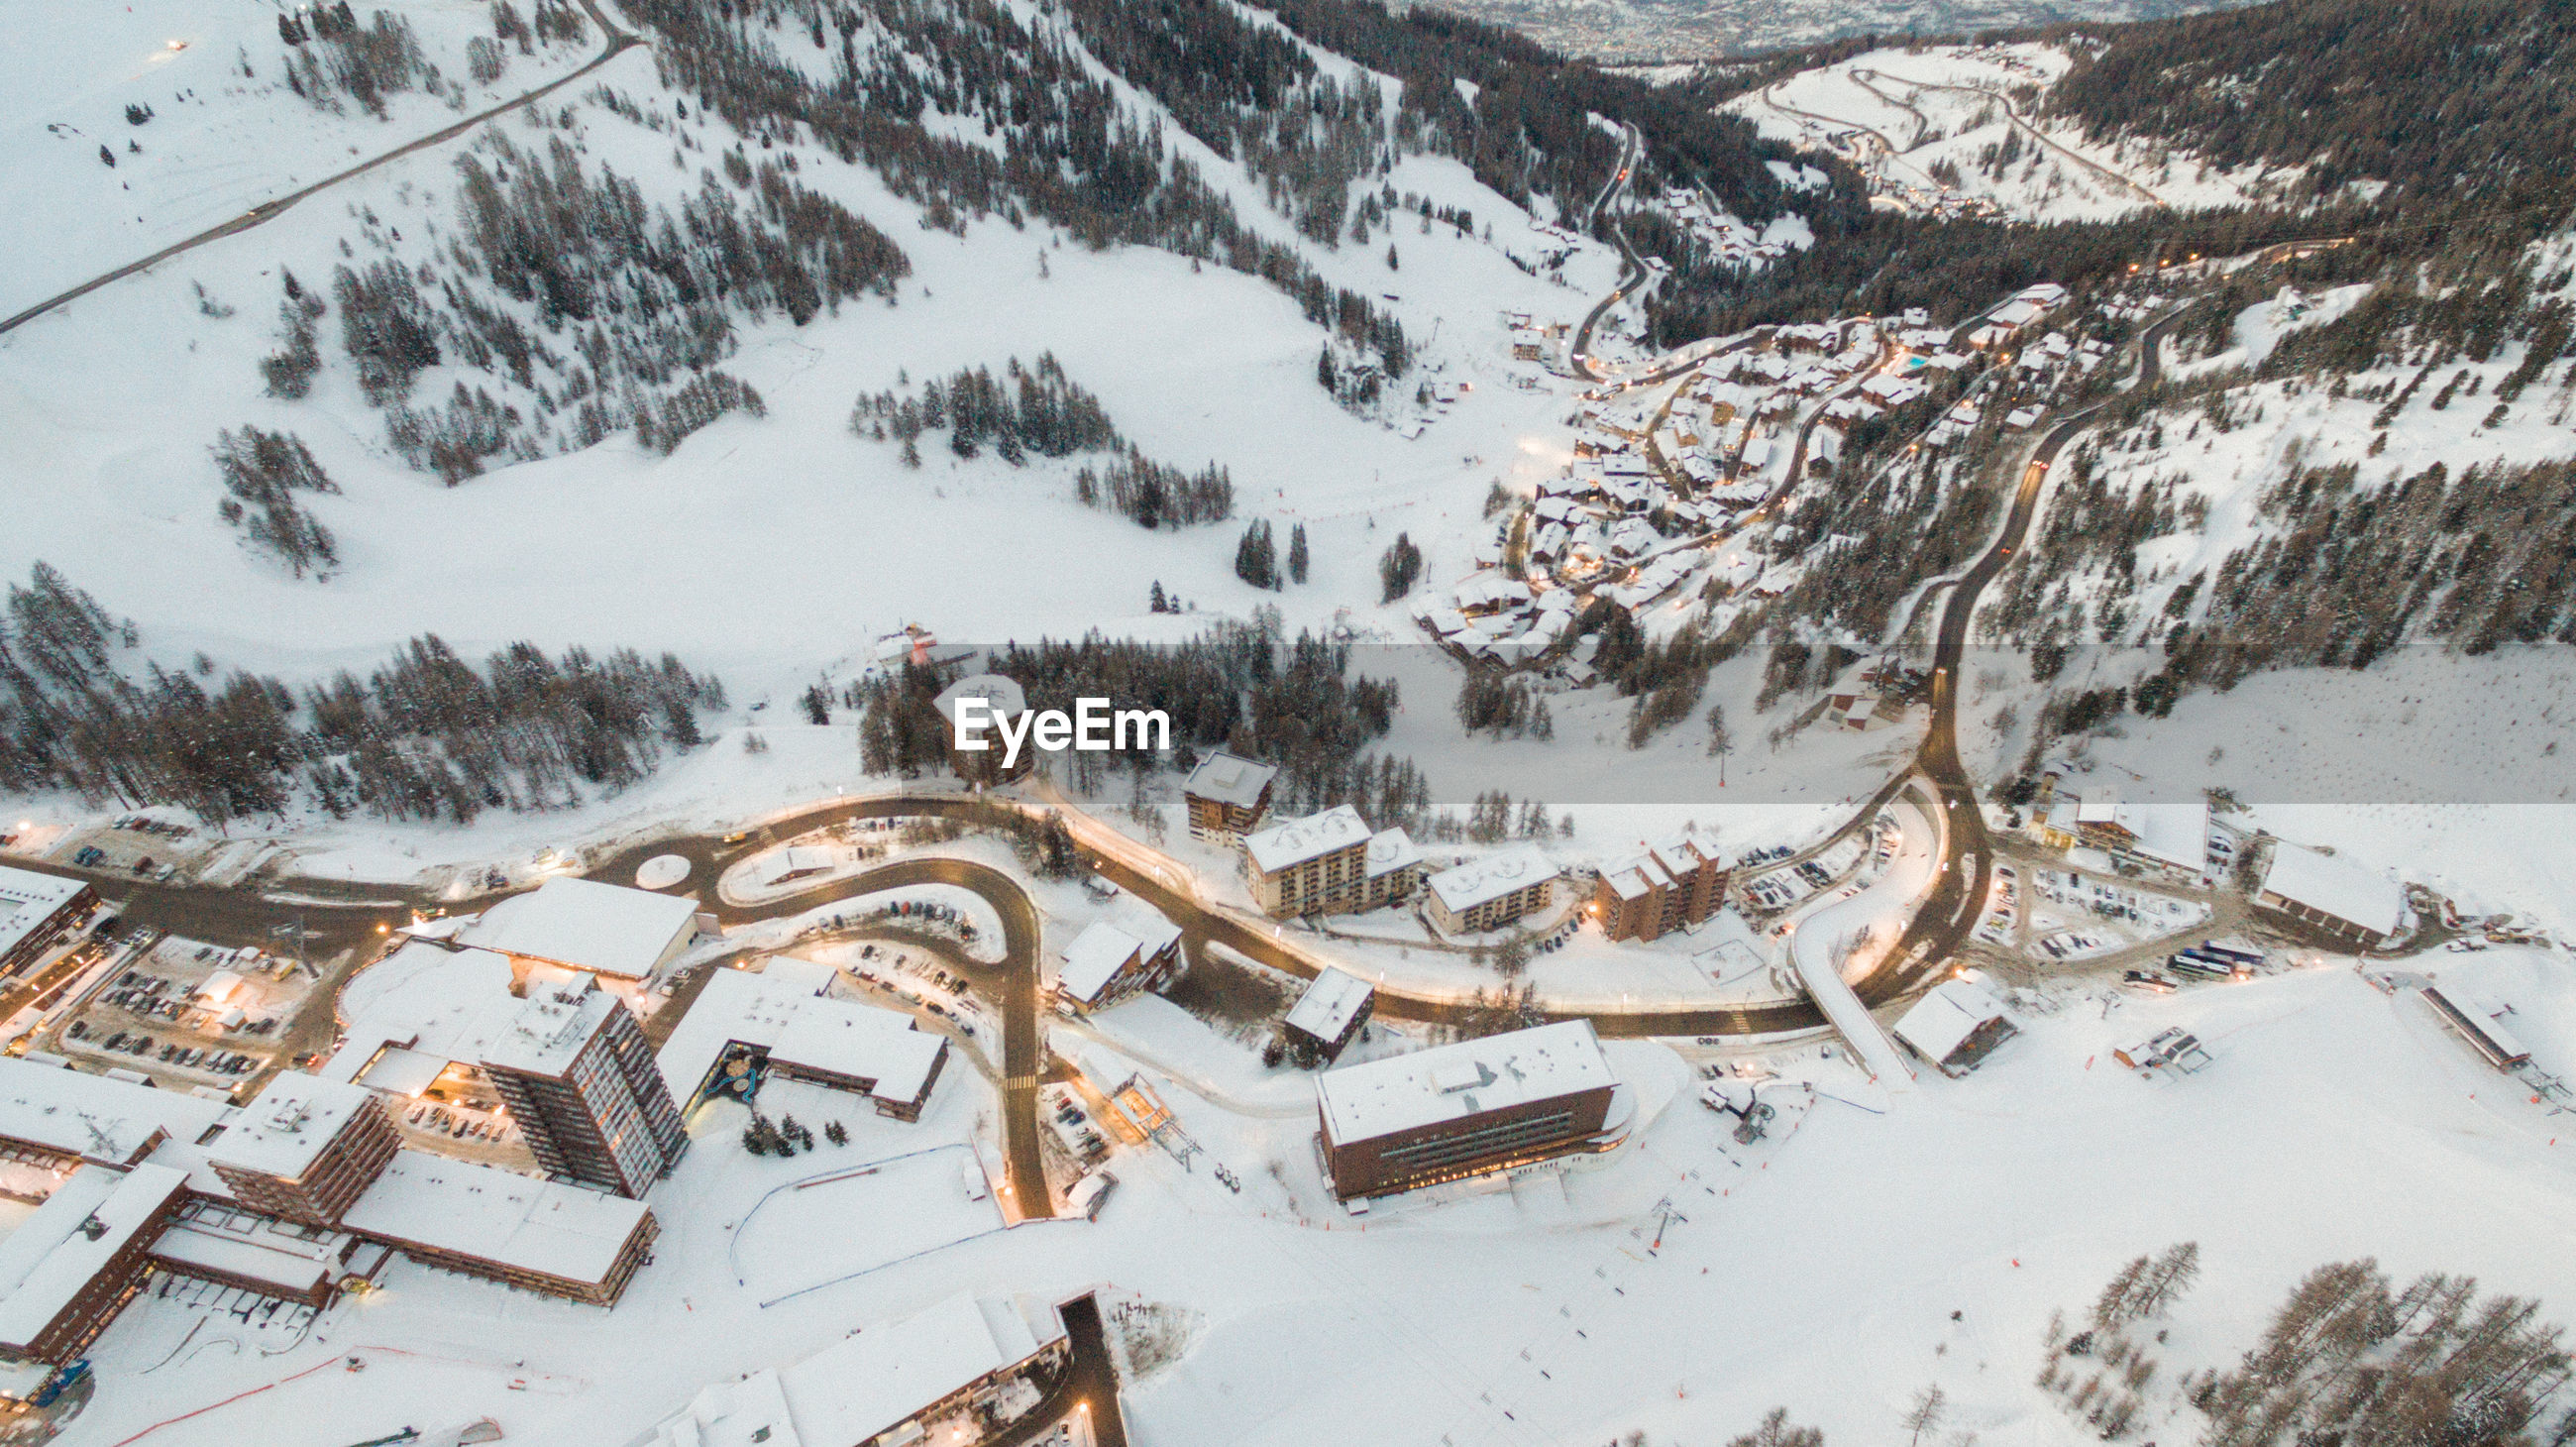 Aerial view of buildings in city during winter